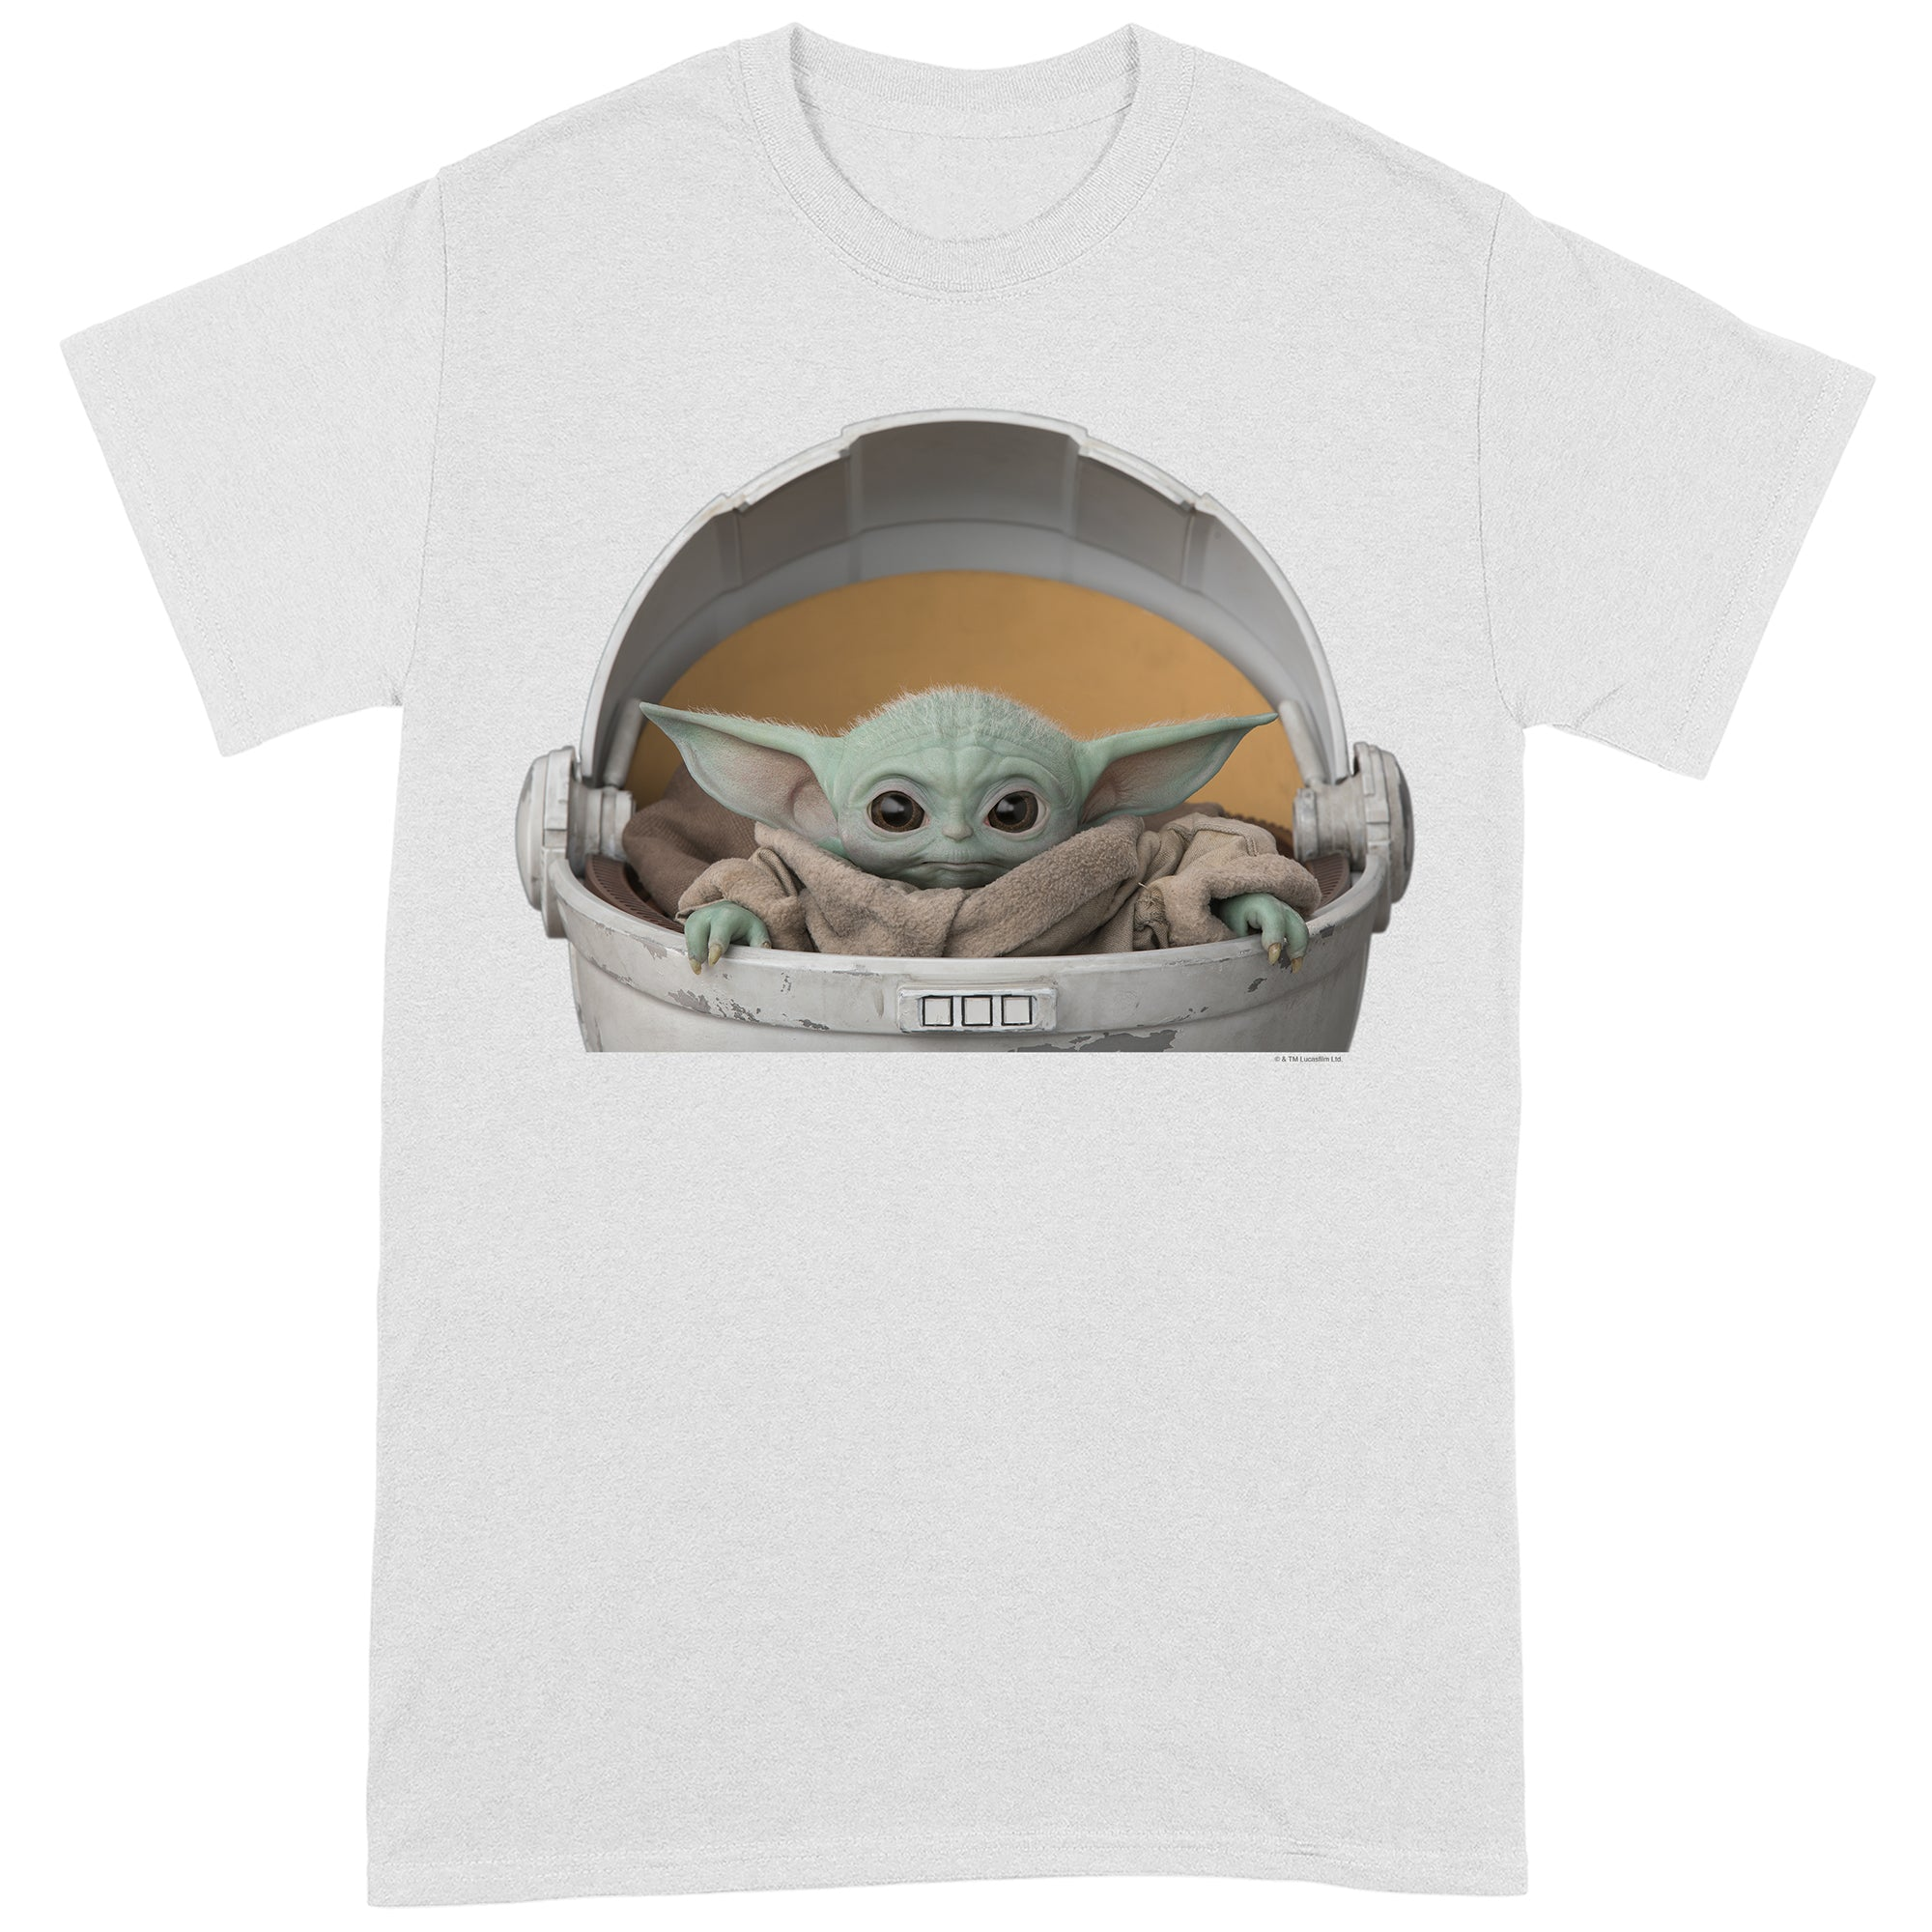 The Mandalorian The Child Pod T-Shirt